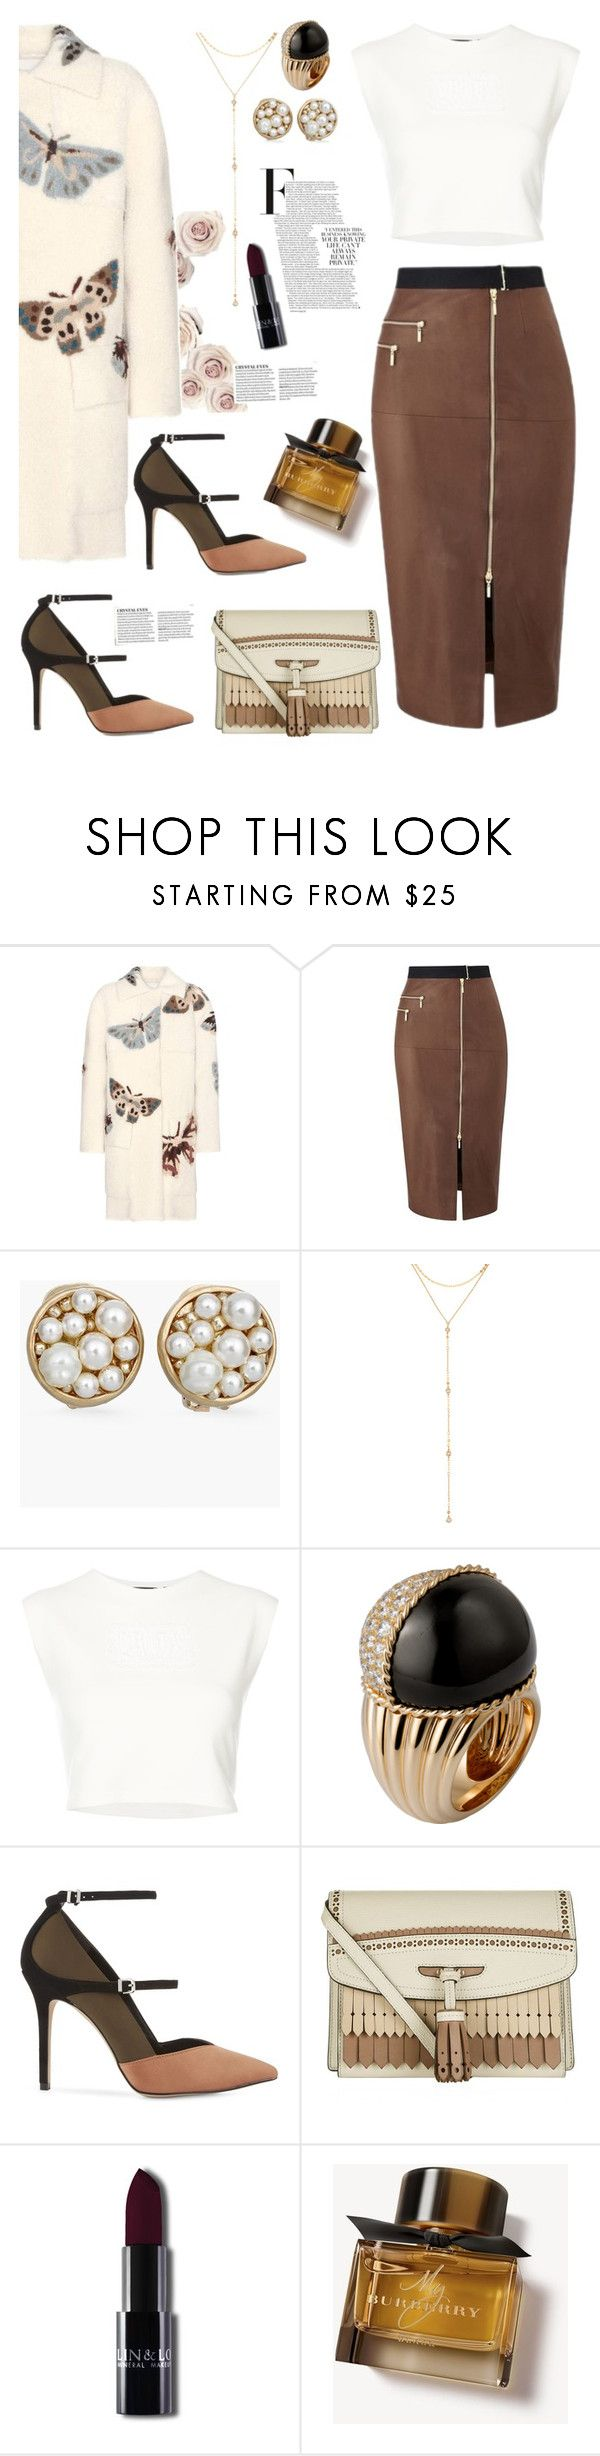 """private lives"" by felicitysparks ❤ liked on Polyvore featuring Valentino, Amanda Wakeley, Chico's, Fragments, Puma, Reiss and Burberry"